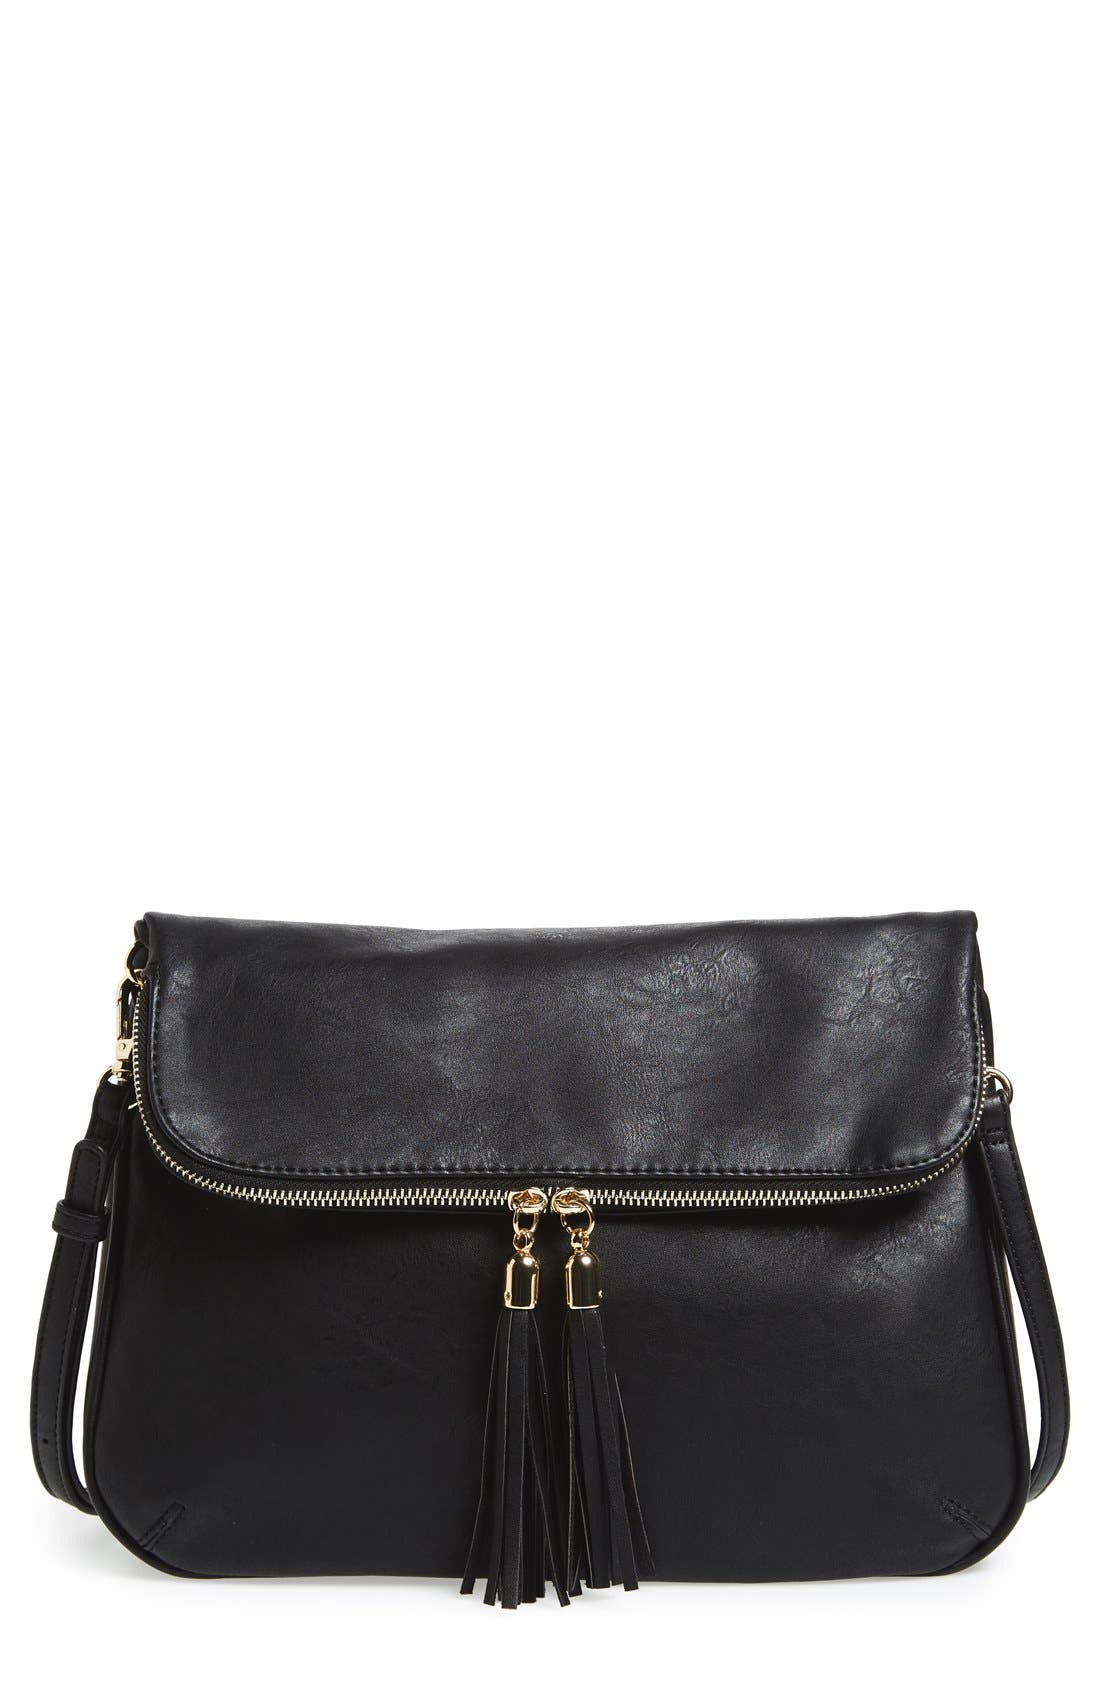 Alternate Image 1 Selected - BP. Foldover Crossbody Bag